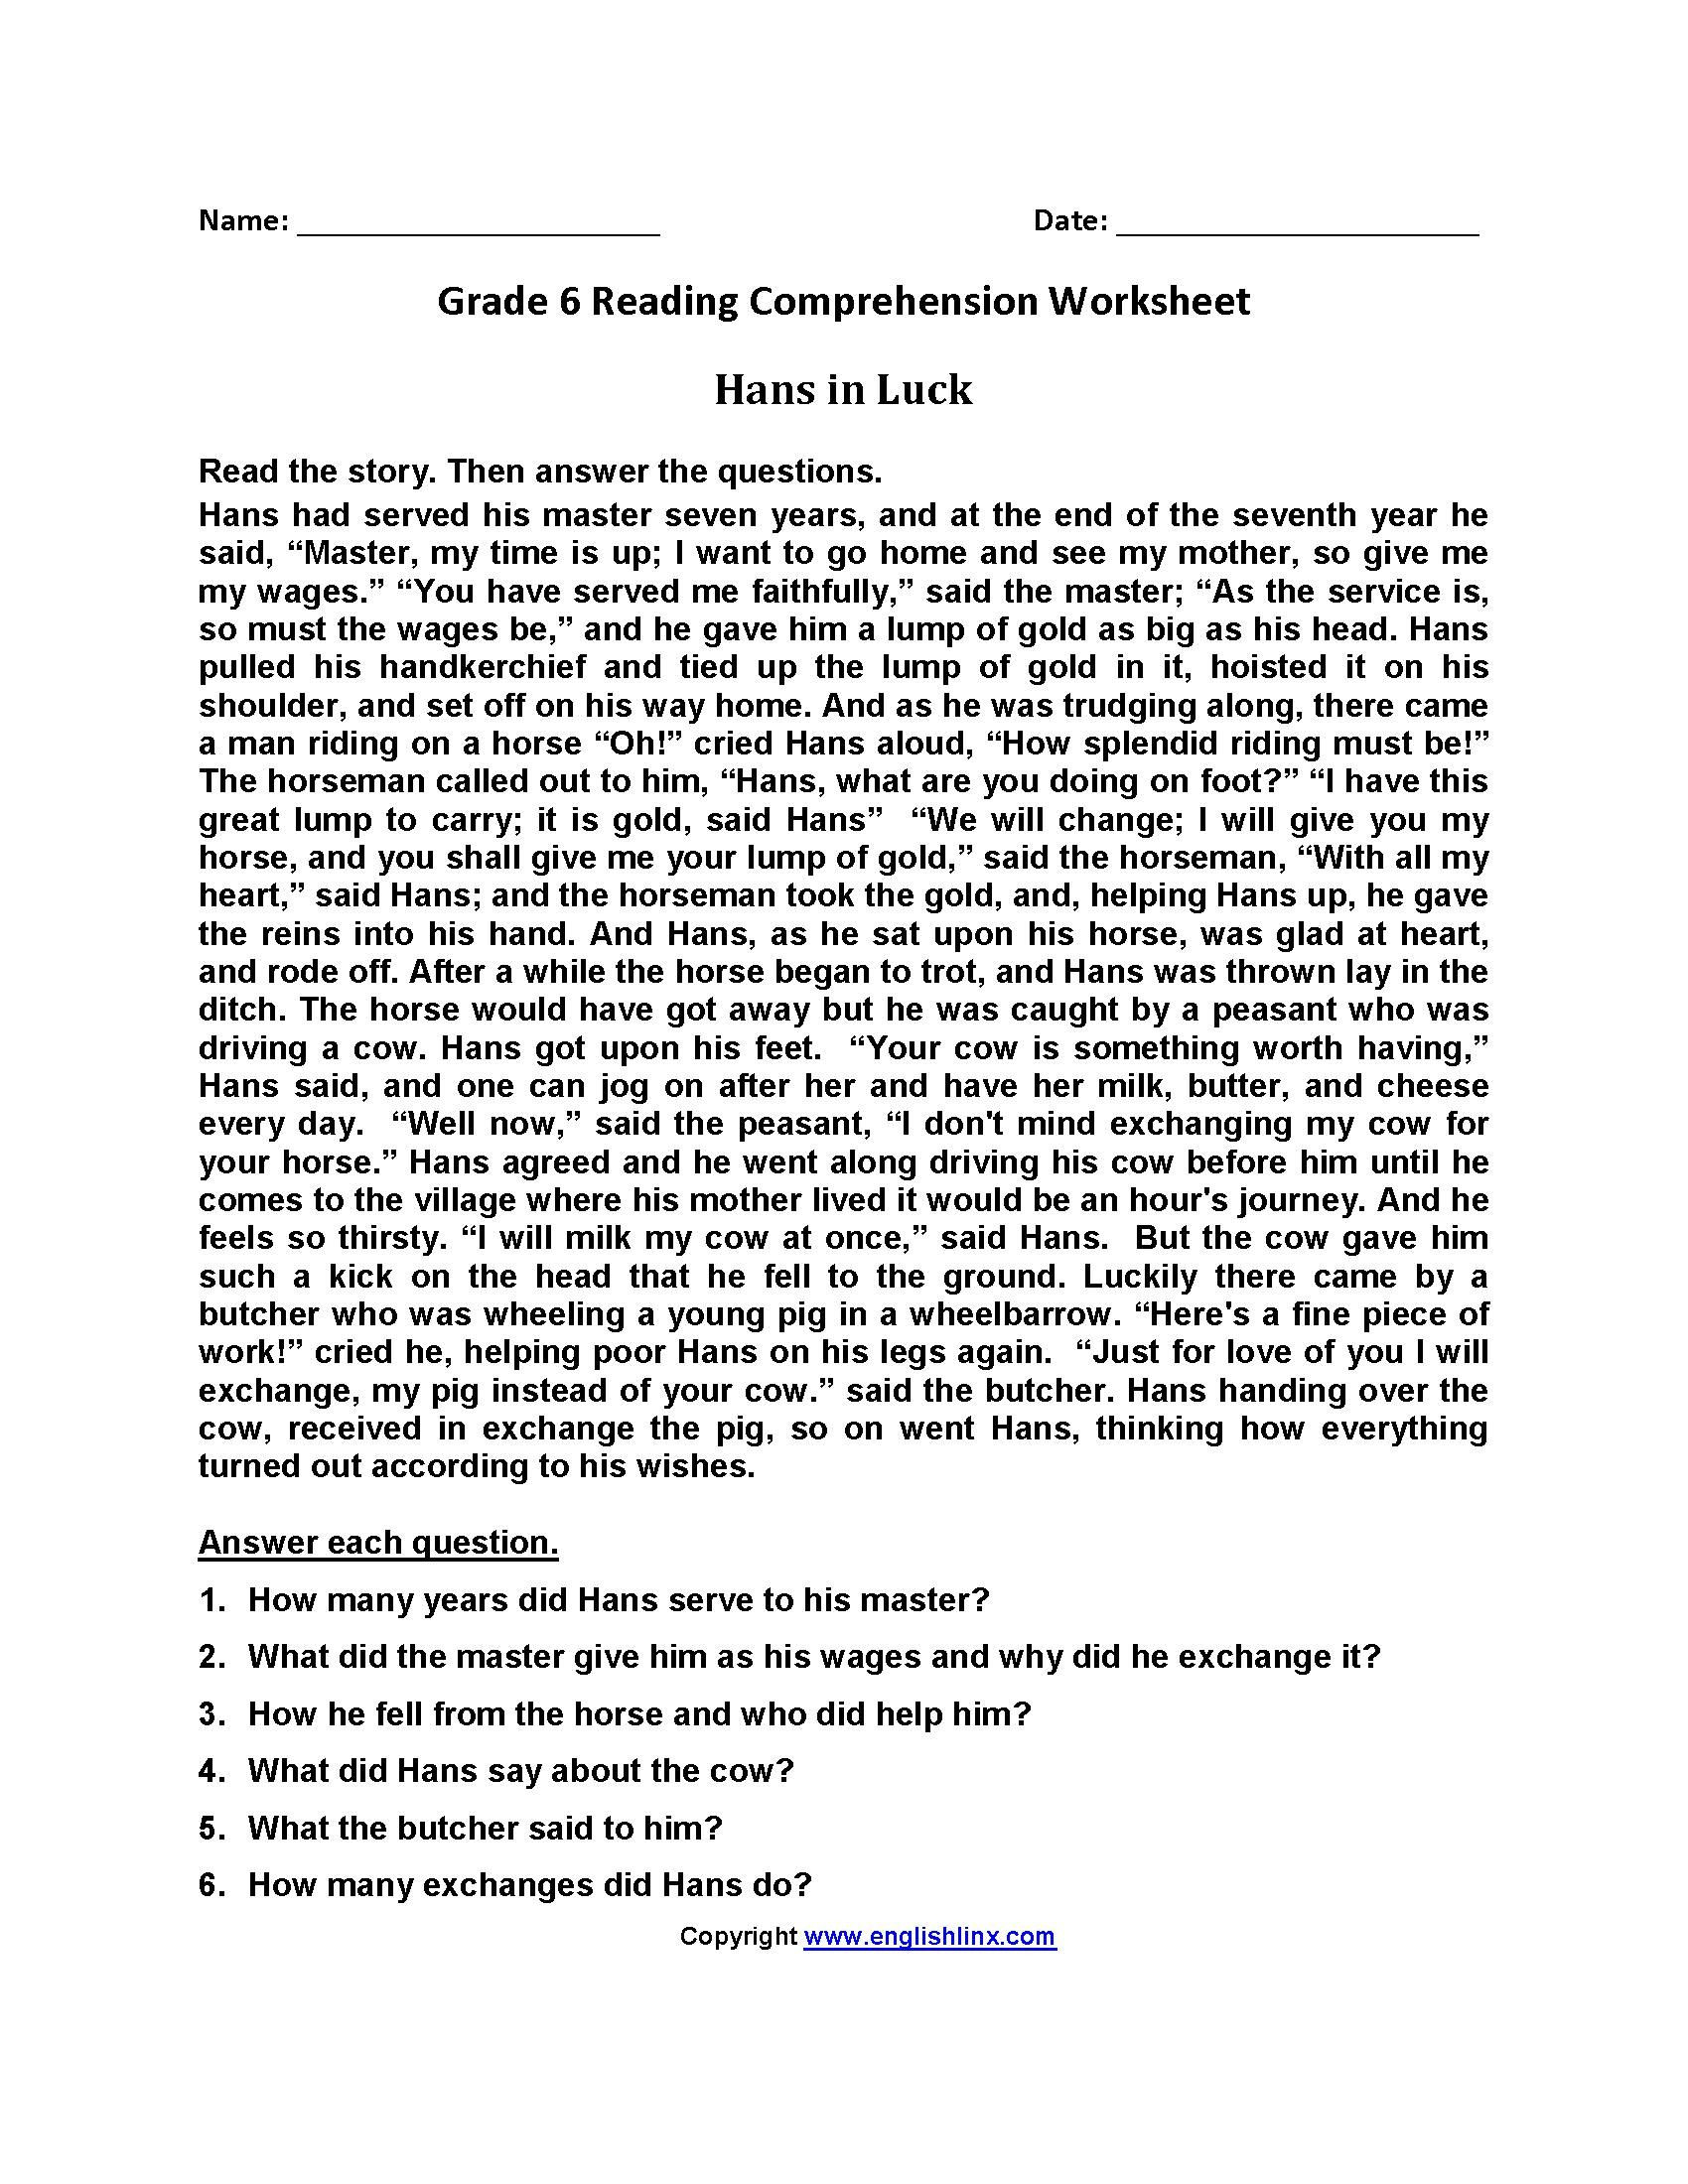 Comprehension Worksheets 6th Grade Free Printable Reading Worksheets for Grade 6 In 2020